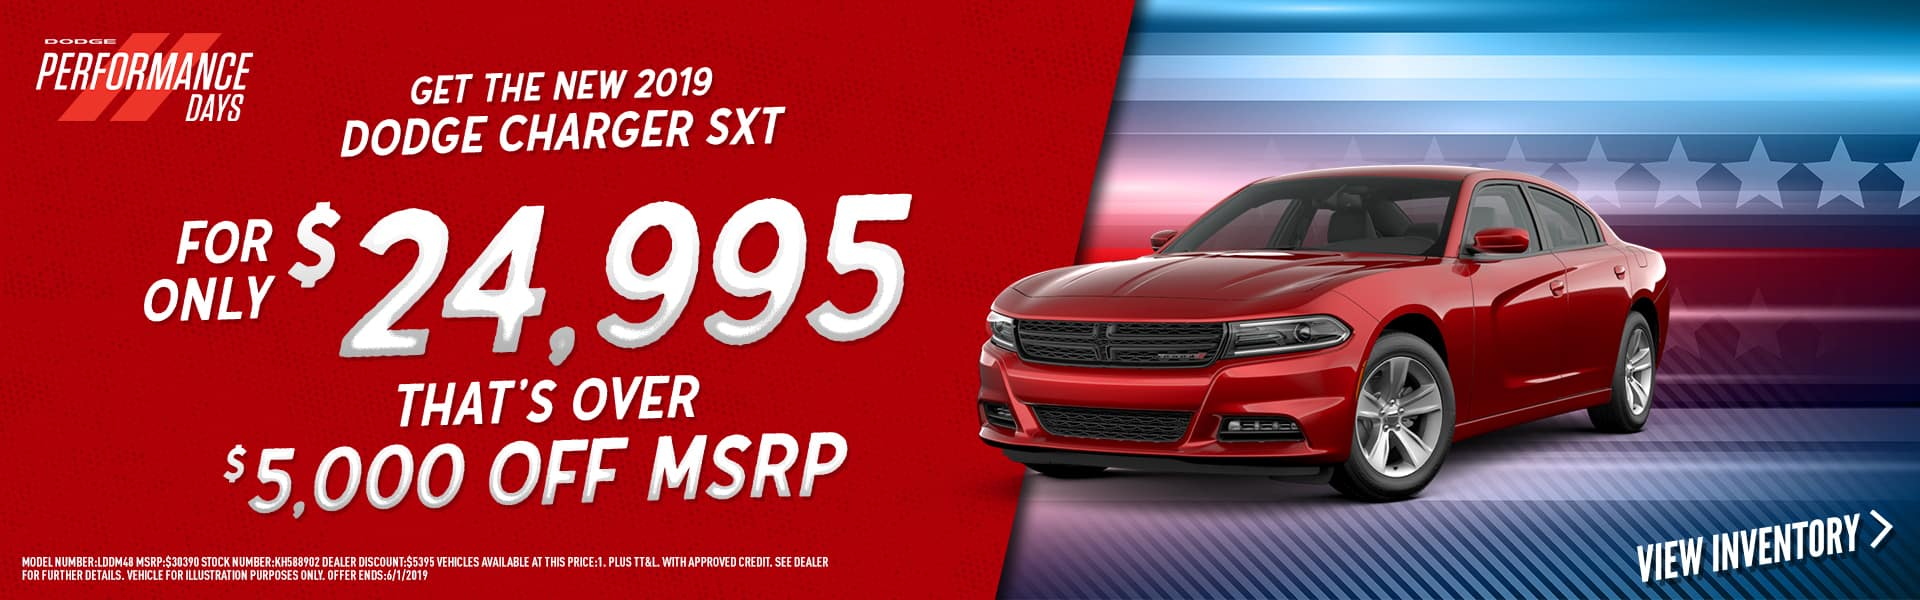 lease-2019-charger-sxt-for-24995-beaumont